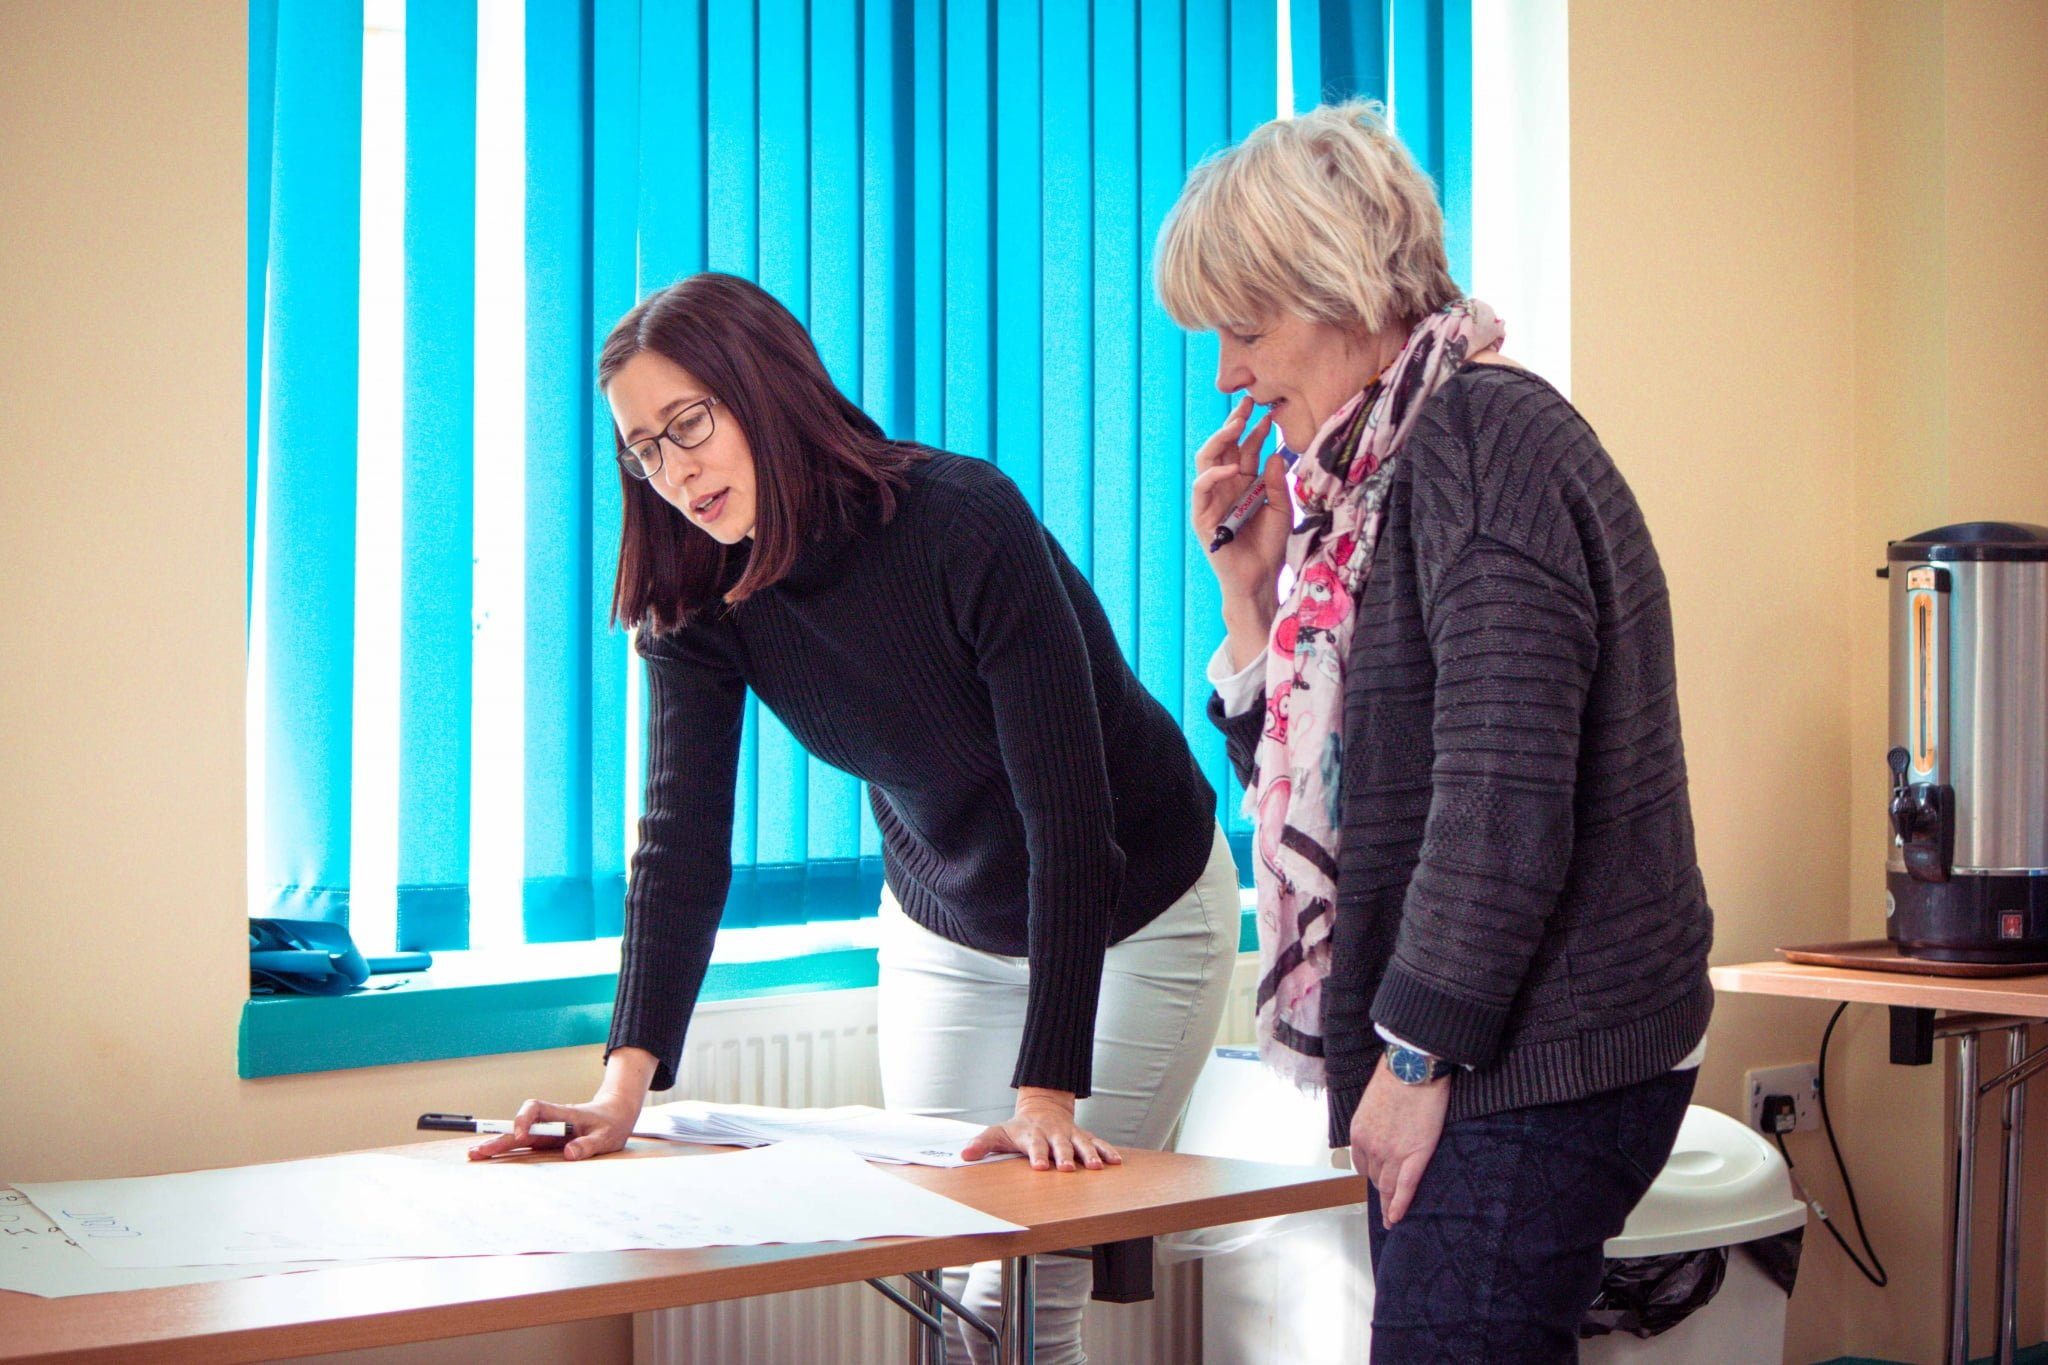 A specialist study skills tutor and student working together at a table